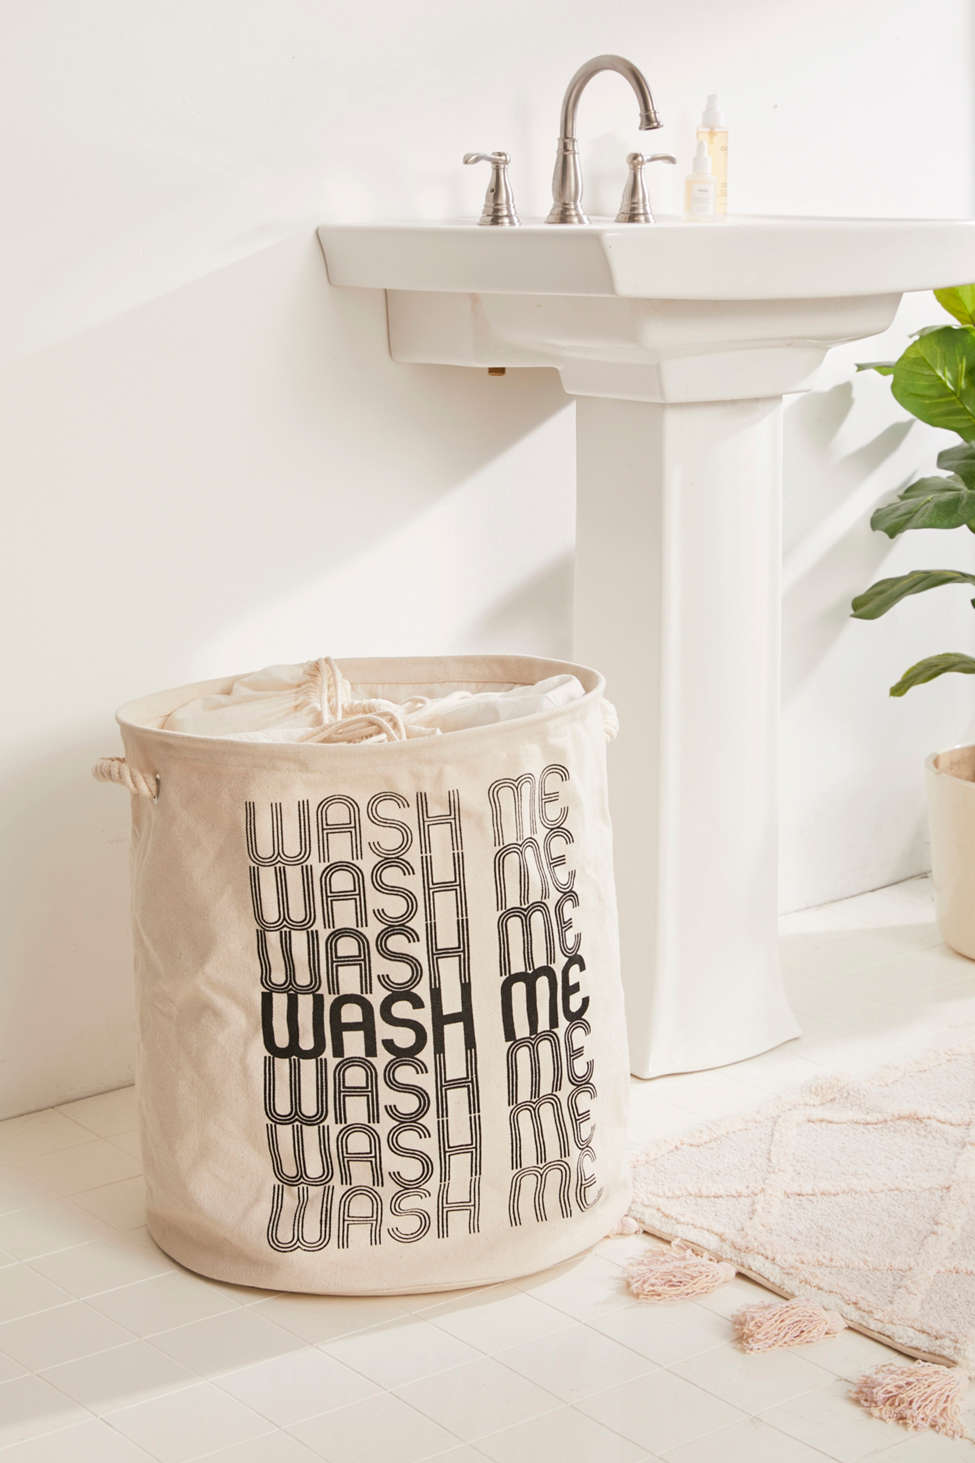 Slide View: 1: Wash Me Printed Canvas Laundry Bag